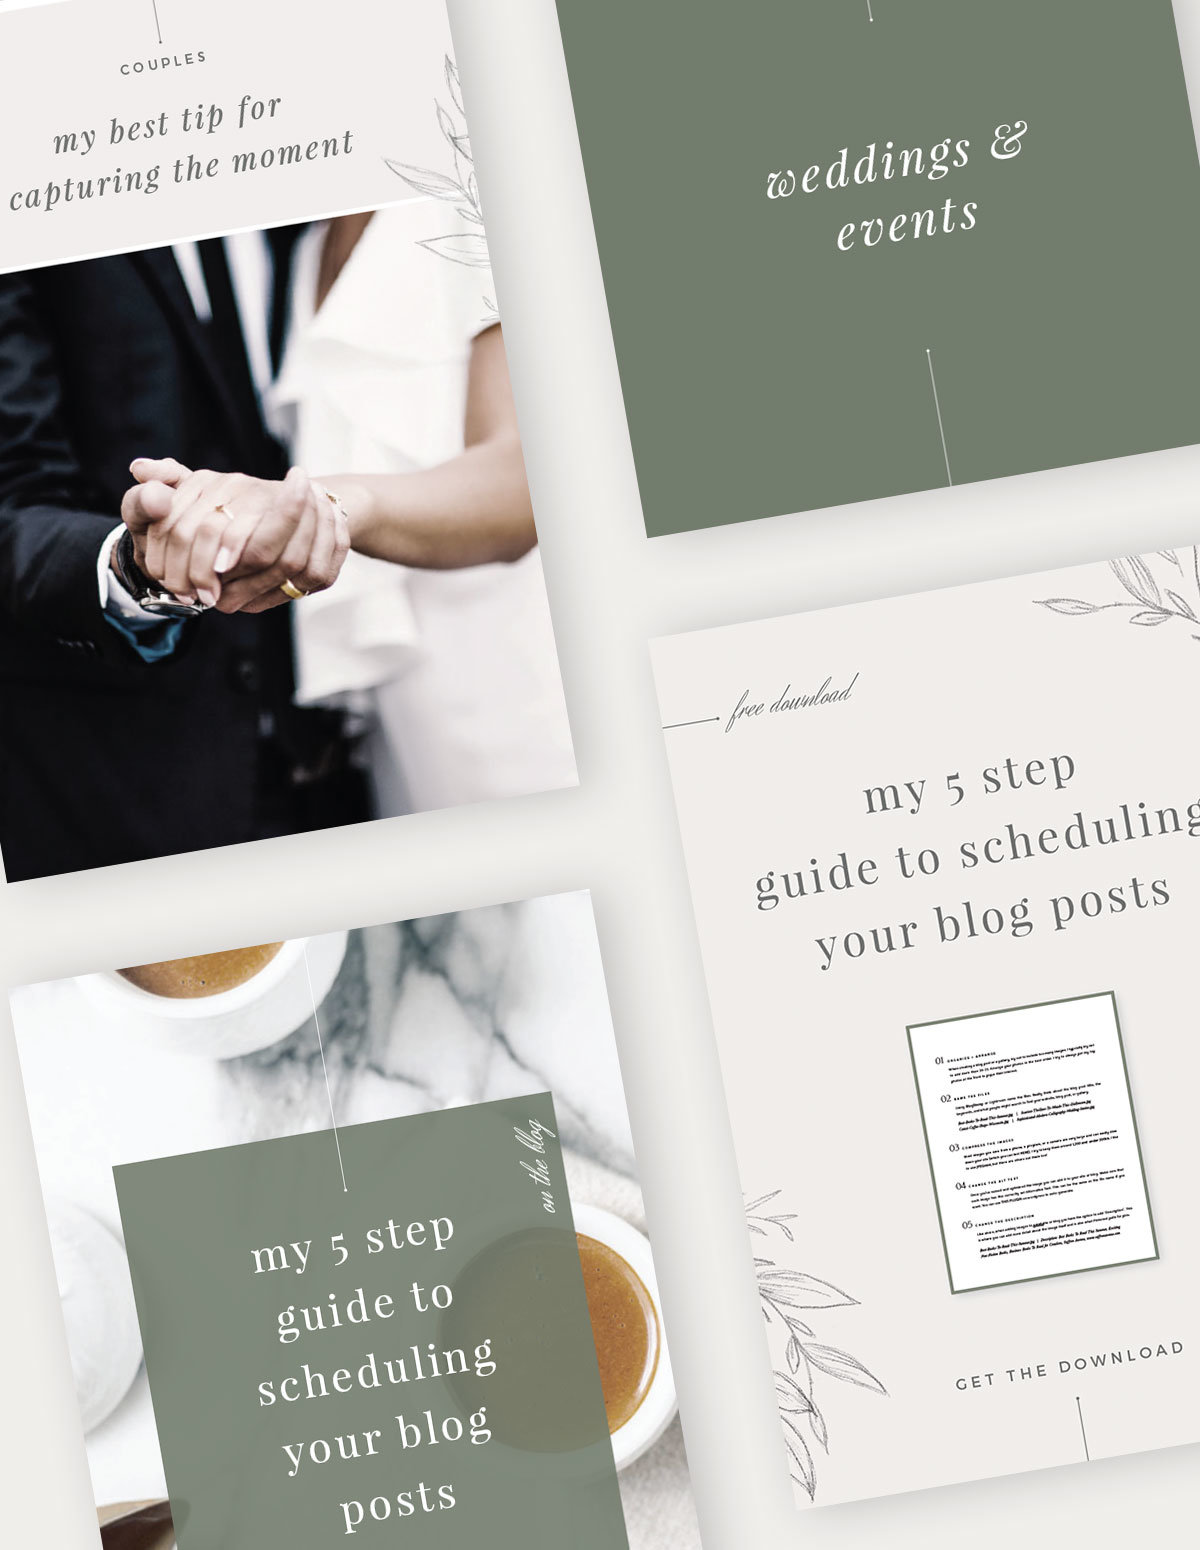 Easy-to-Edit Social Media Templates for Creative Businesses, Whimsical and Classic Social Media Templates, Saffron Avenue, www.saffronavenue.com